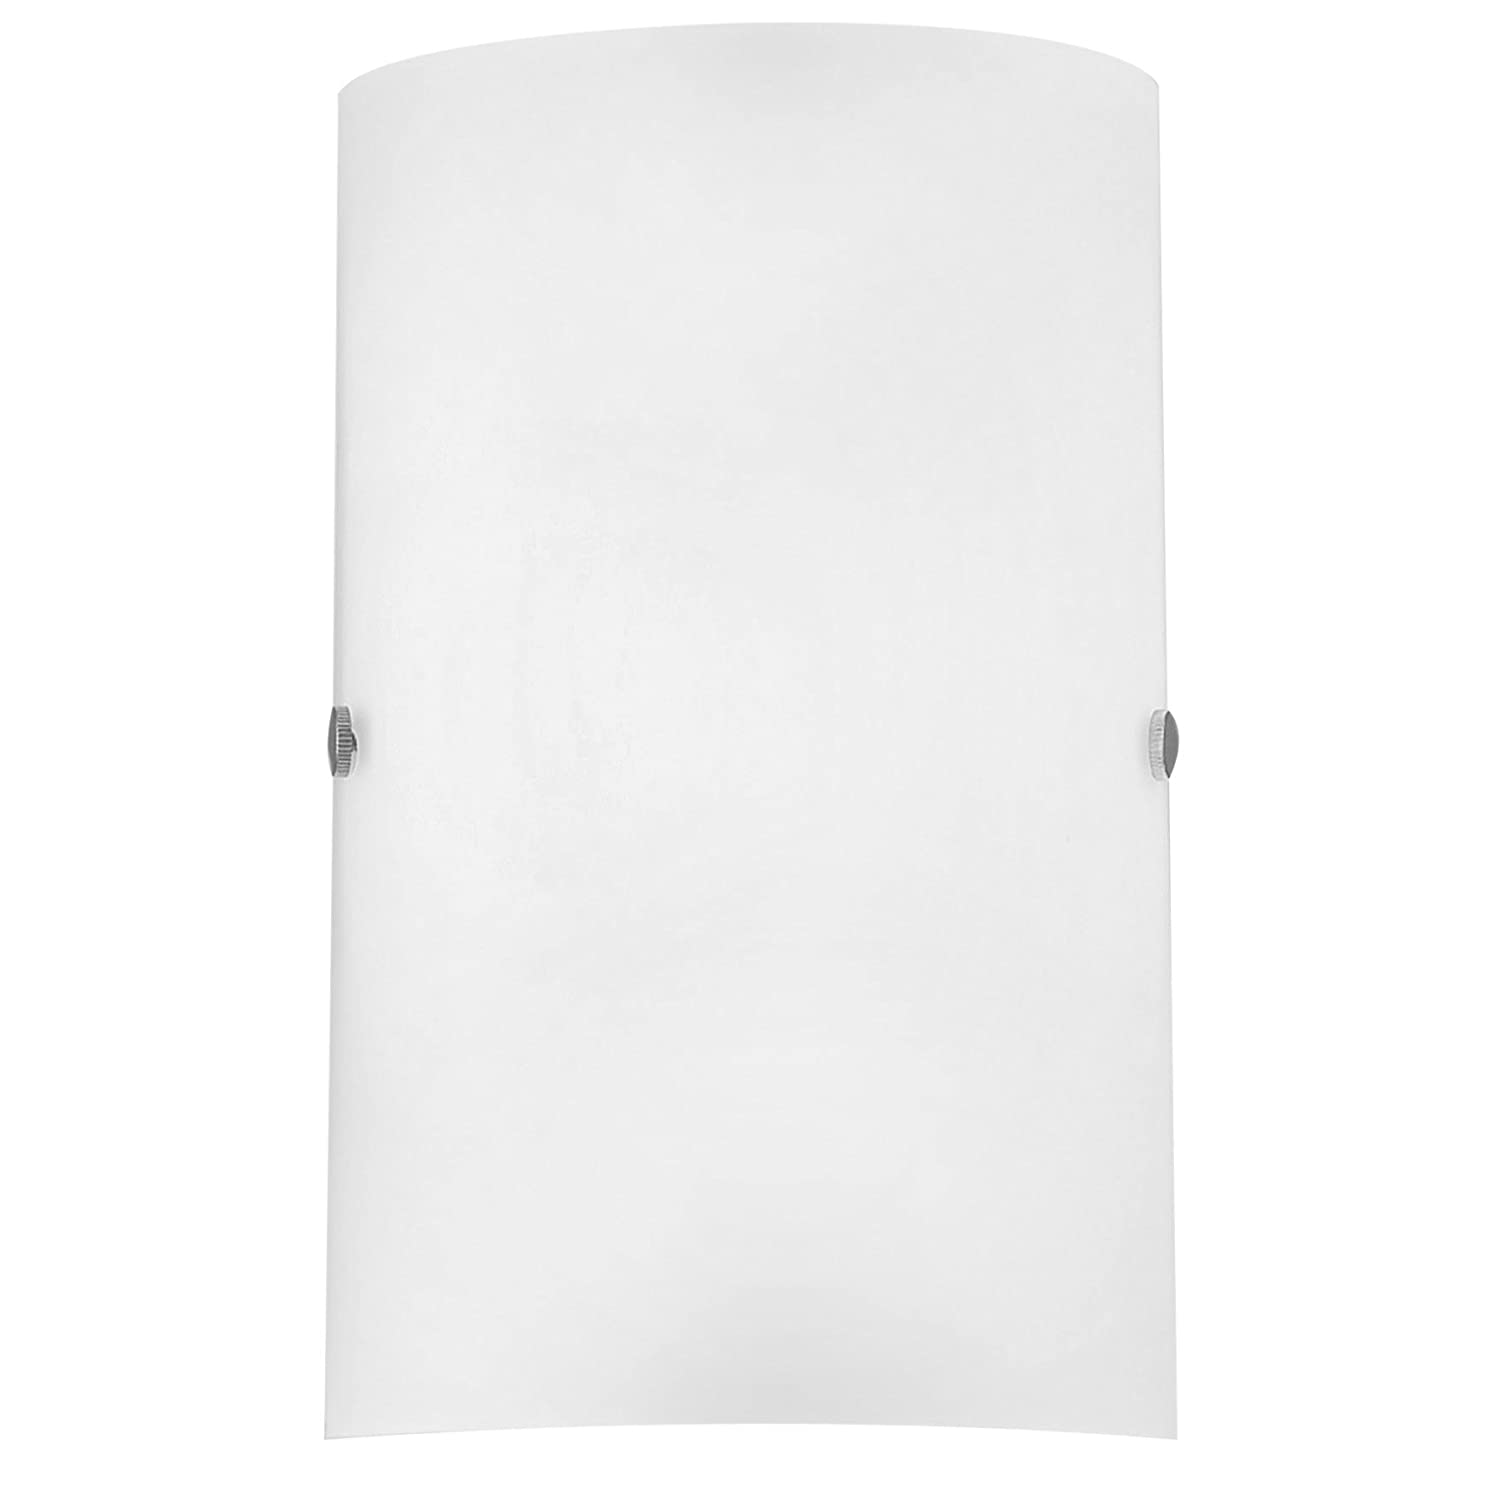 Eglo Troy Model Wall Light 85979 / Steel Nickel-Matt/Glass Satinised White/HV 1 x E14 max. 60W / excluding Bulb/L 18 cm H 25 cm A 7.5 cm [Energy Class D] Beco GmbH & Co. KG